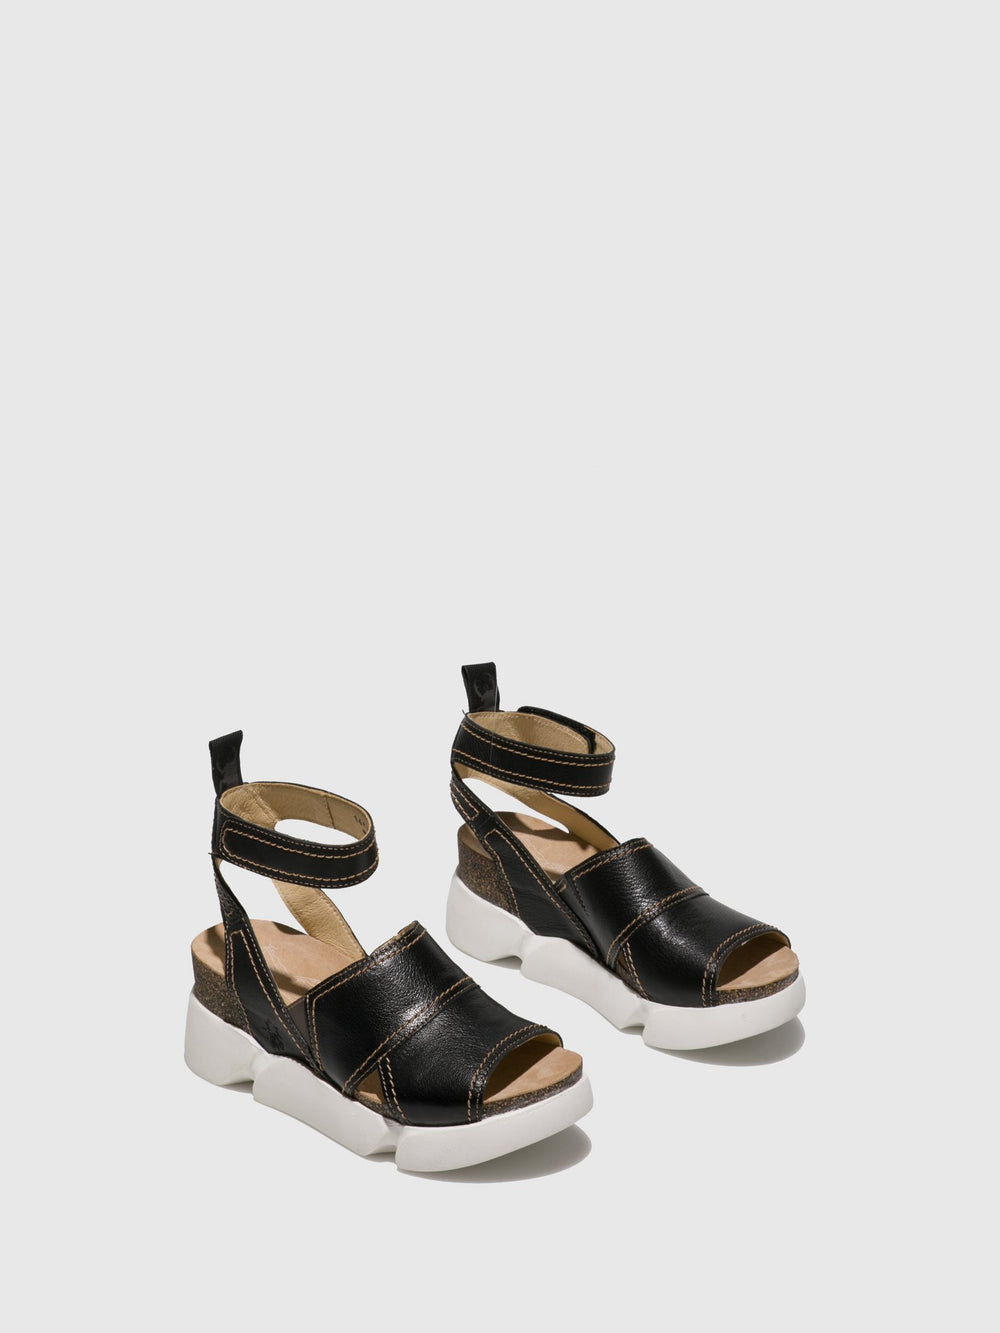 Ankle Strap Sandals SOBE579FLY BLACK